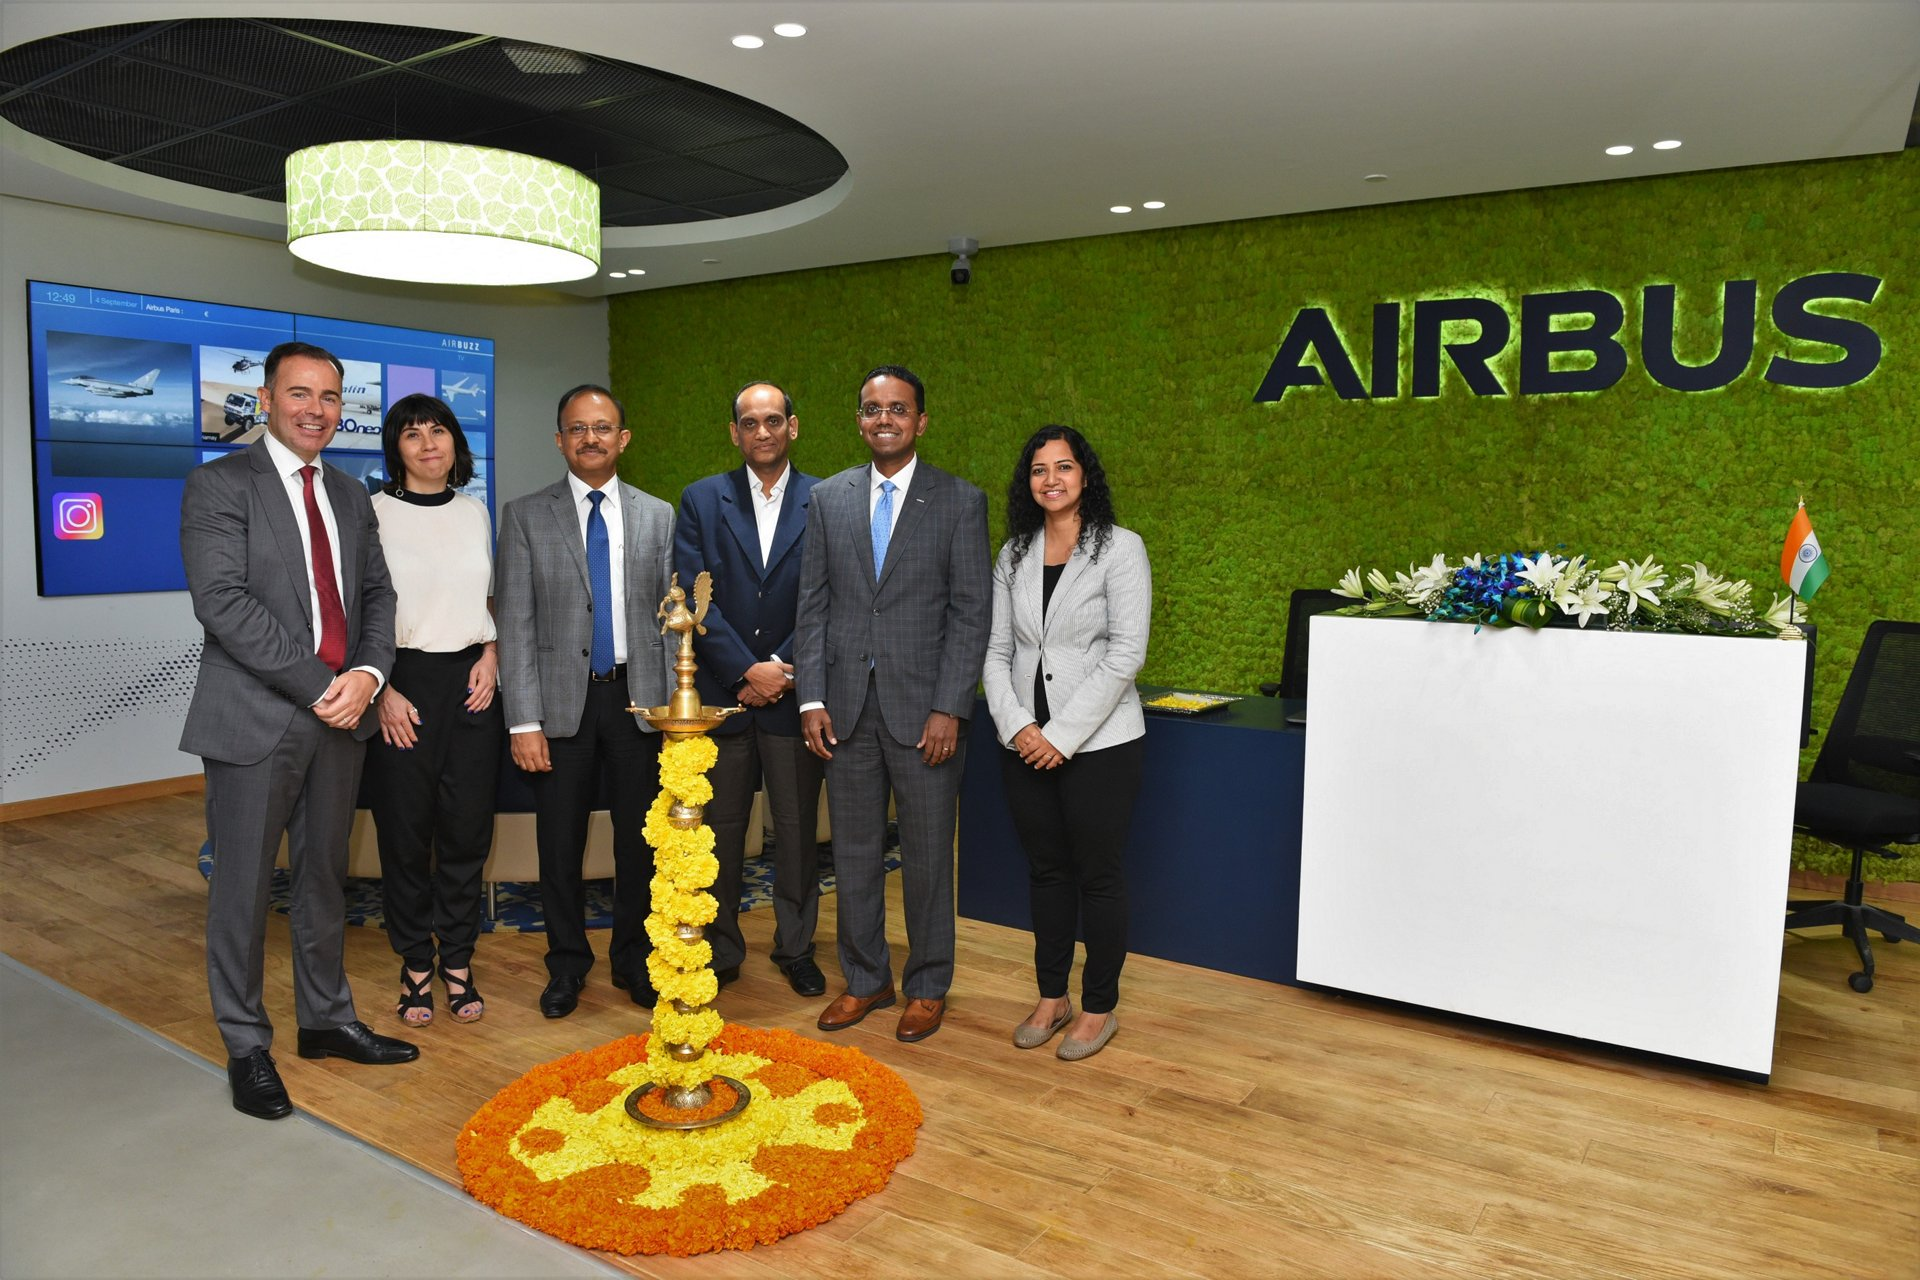 From left to right: Carlo Nizam, Chief Information Officer, Airbus India & South Asia; Marjorie Vanbaelinghem, Consule Generale, Consulate General of France in Bengaluru; Gaurav Gupta, IAS, Principal Secretary to Government, Commerce & Industries Department; Dr E.V. Ramana Reddy, IAS, Additional Chief Secretary to Government, Department of Information Technology; Anand Stanley, President & Managing Director, Airbus India & South Asia; Sujata Sundaram, Officer – Economic Affairs & PR, Consulate General of the Federal Republic of Germany, Bengaluru